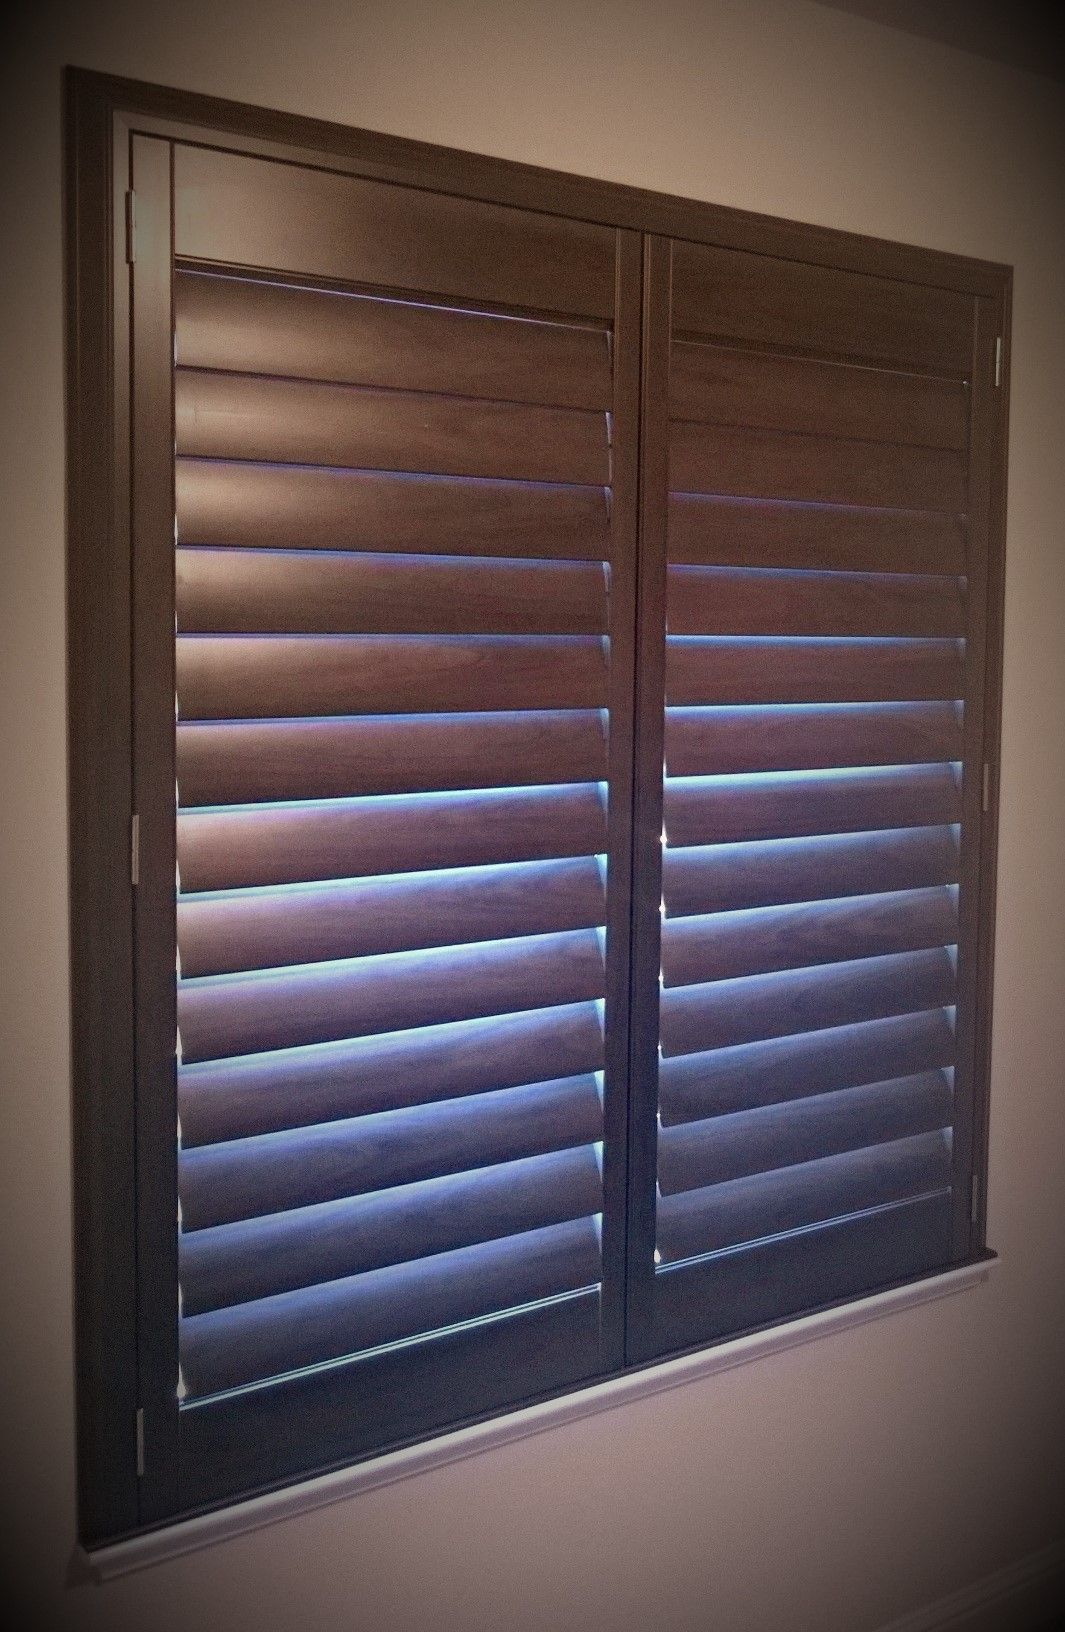 Hunter douglas new style 4 1 2 shutters w truview rear for Spanish style window shutters